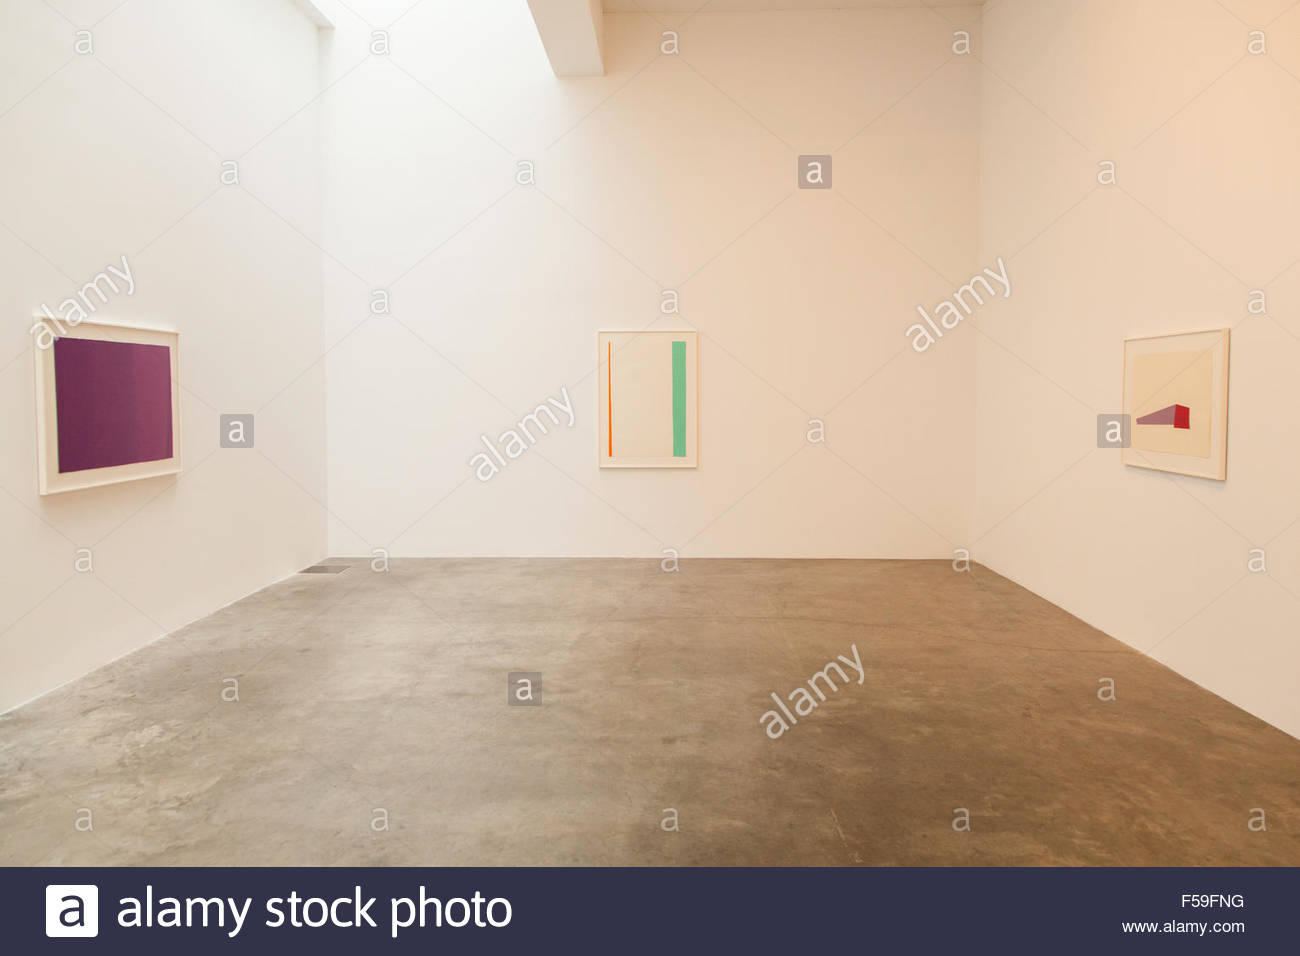 Svenja Deininger: Untitled/ Head exhibition at the Marianne Boesky Gallery, Chelsea, New York City, United States - Stock Image